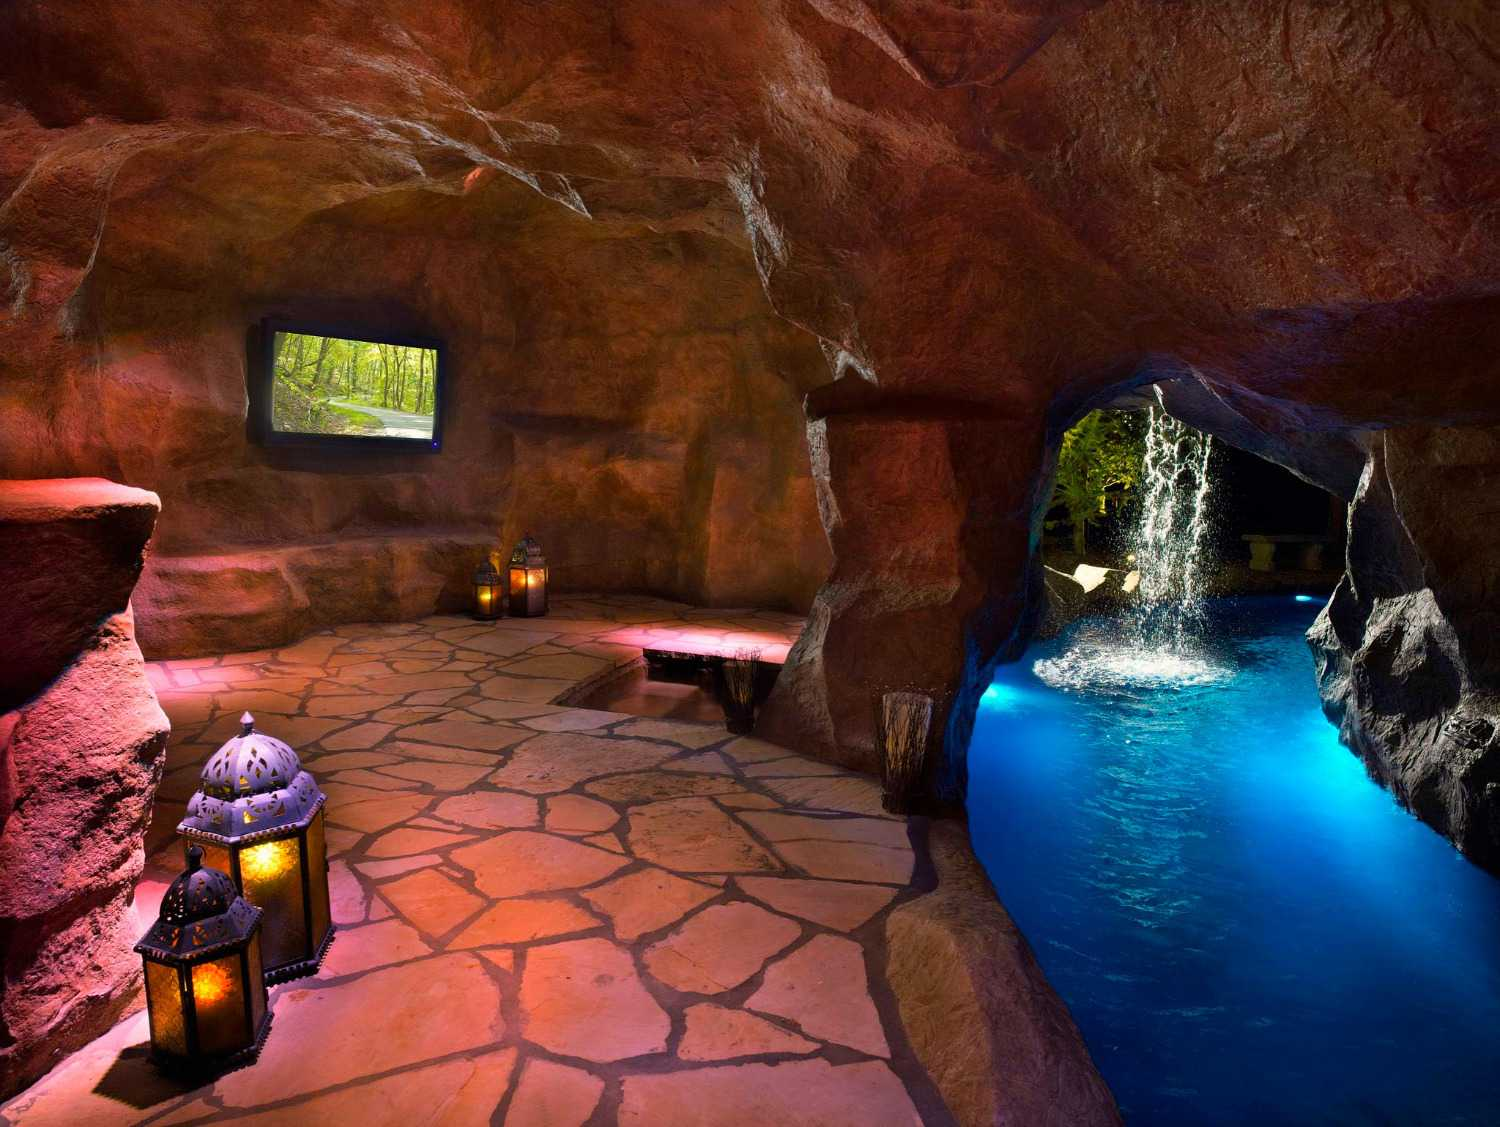 Pool with grotto and waterfall